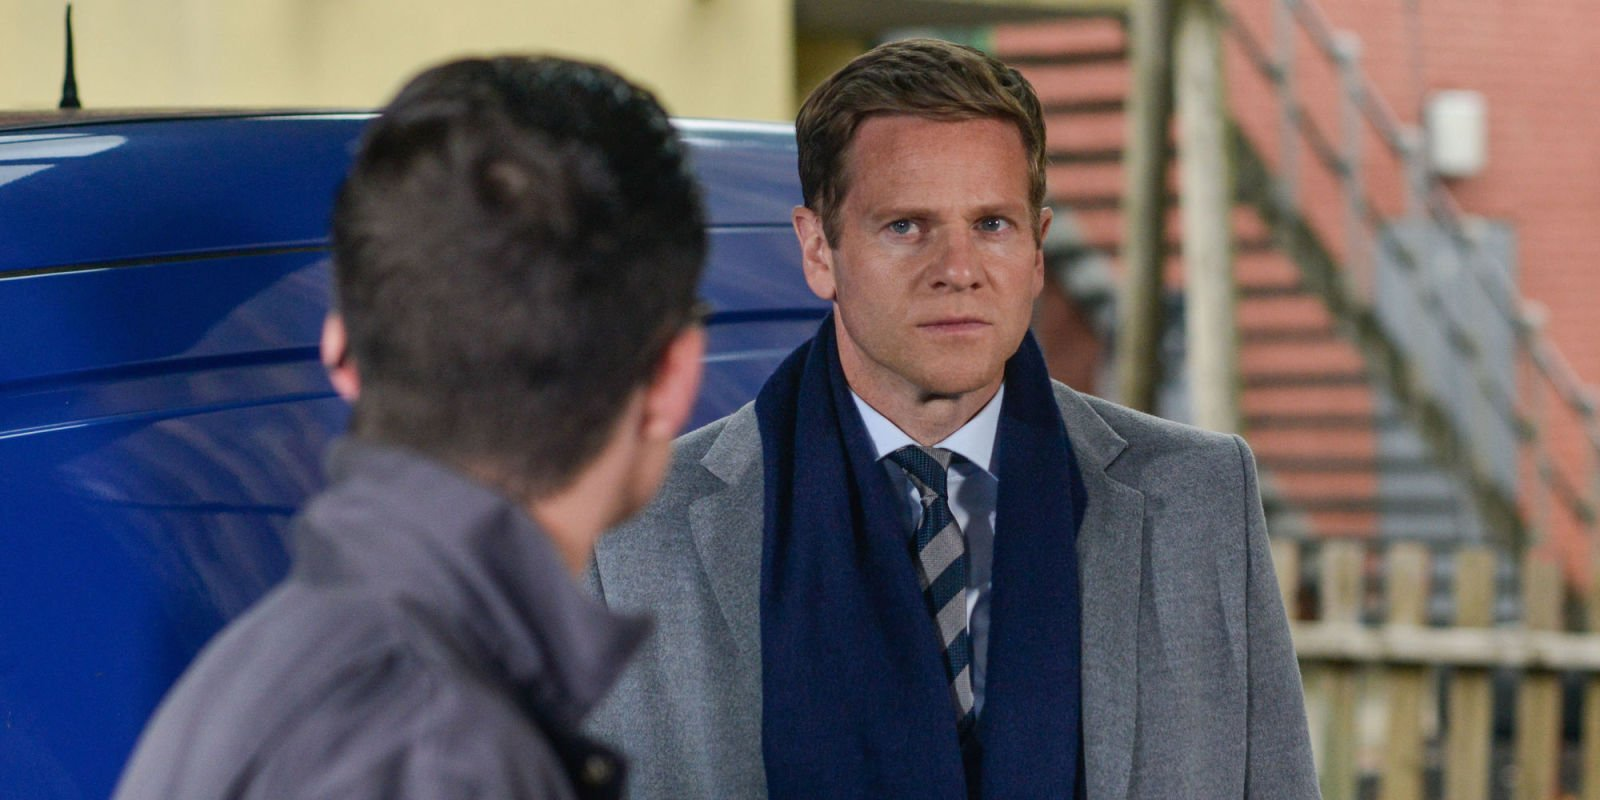 EastEnders fans reckon the Luke Browning mystery might finally be solved